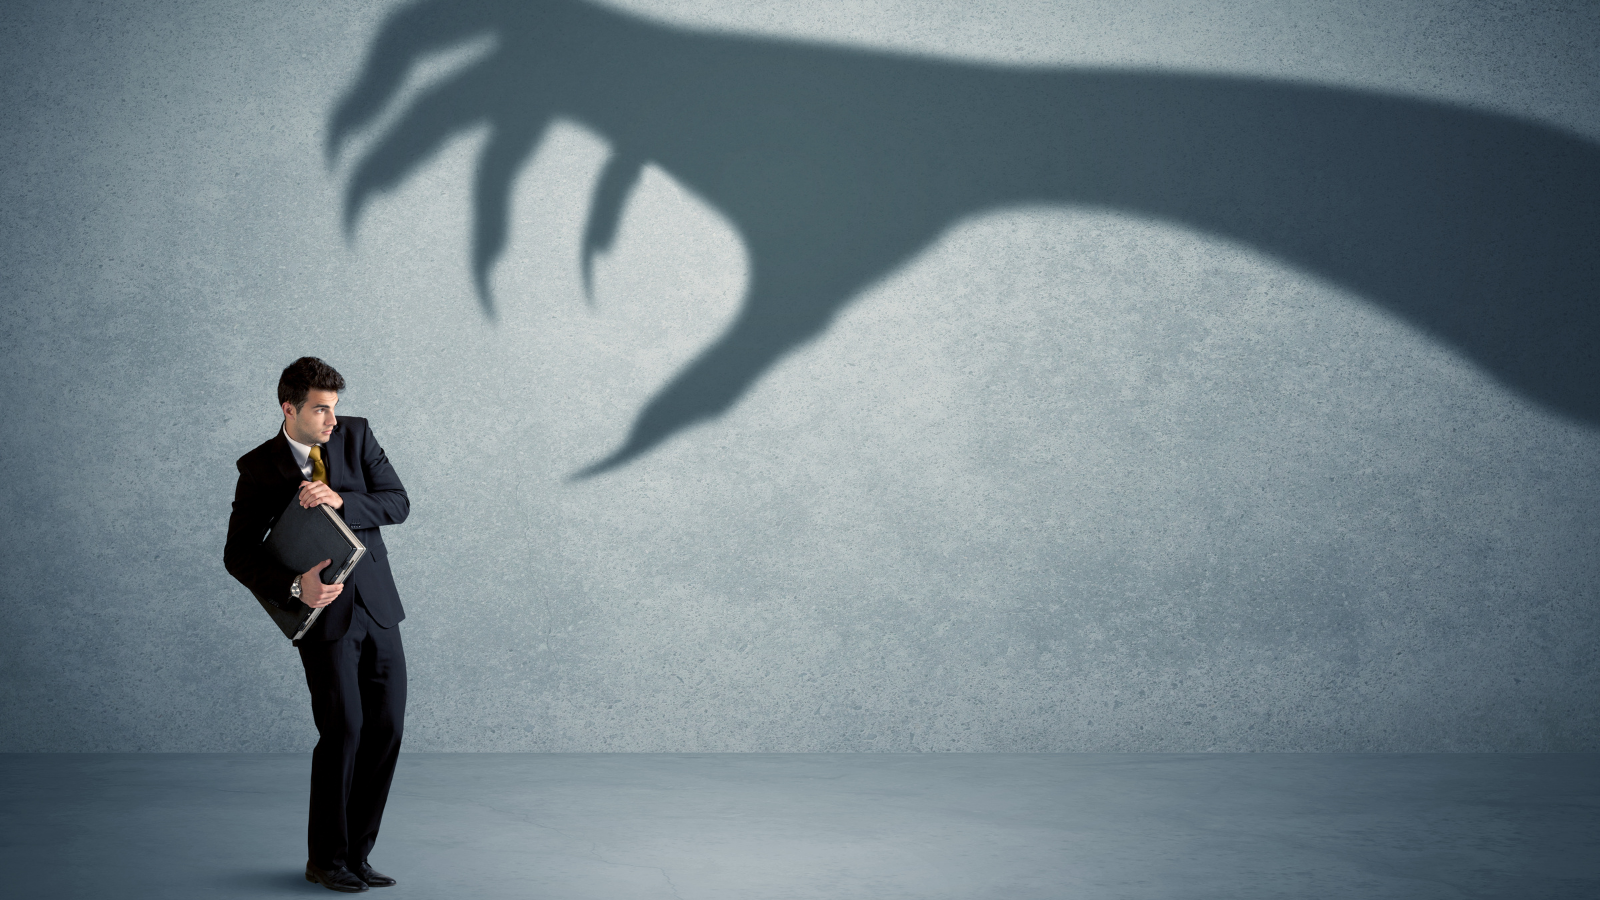 Avoid nightmare bosses by asking this 1 question in interviews